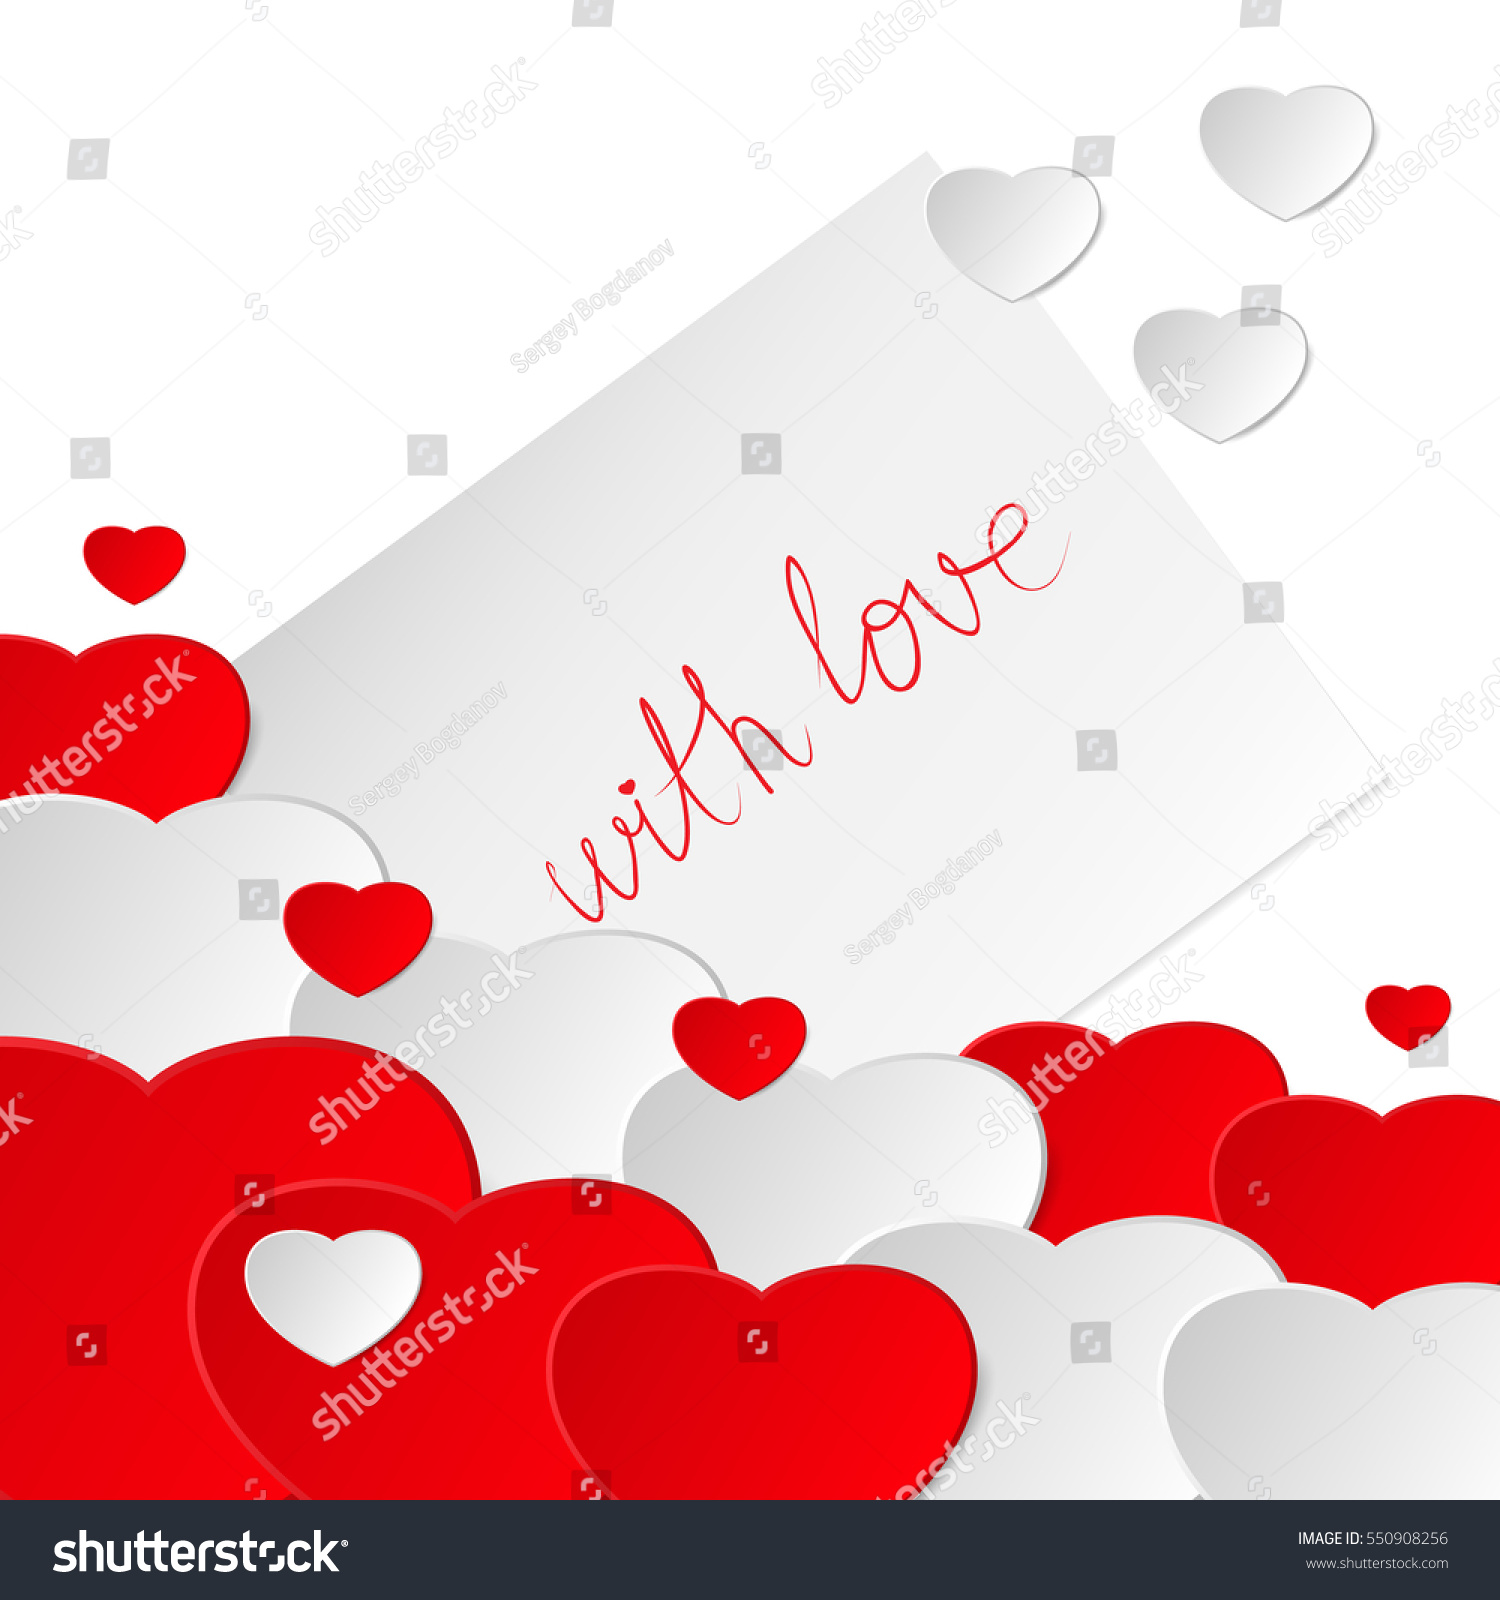 Happy valentines day valentine greeting card stock illustration happy valentines day valentine greeting card with hearts love romantic messages m4hsunfo